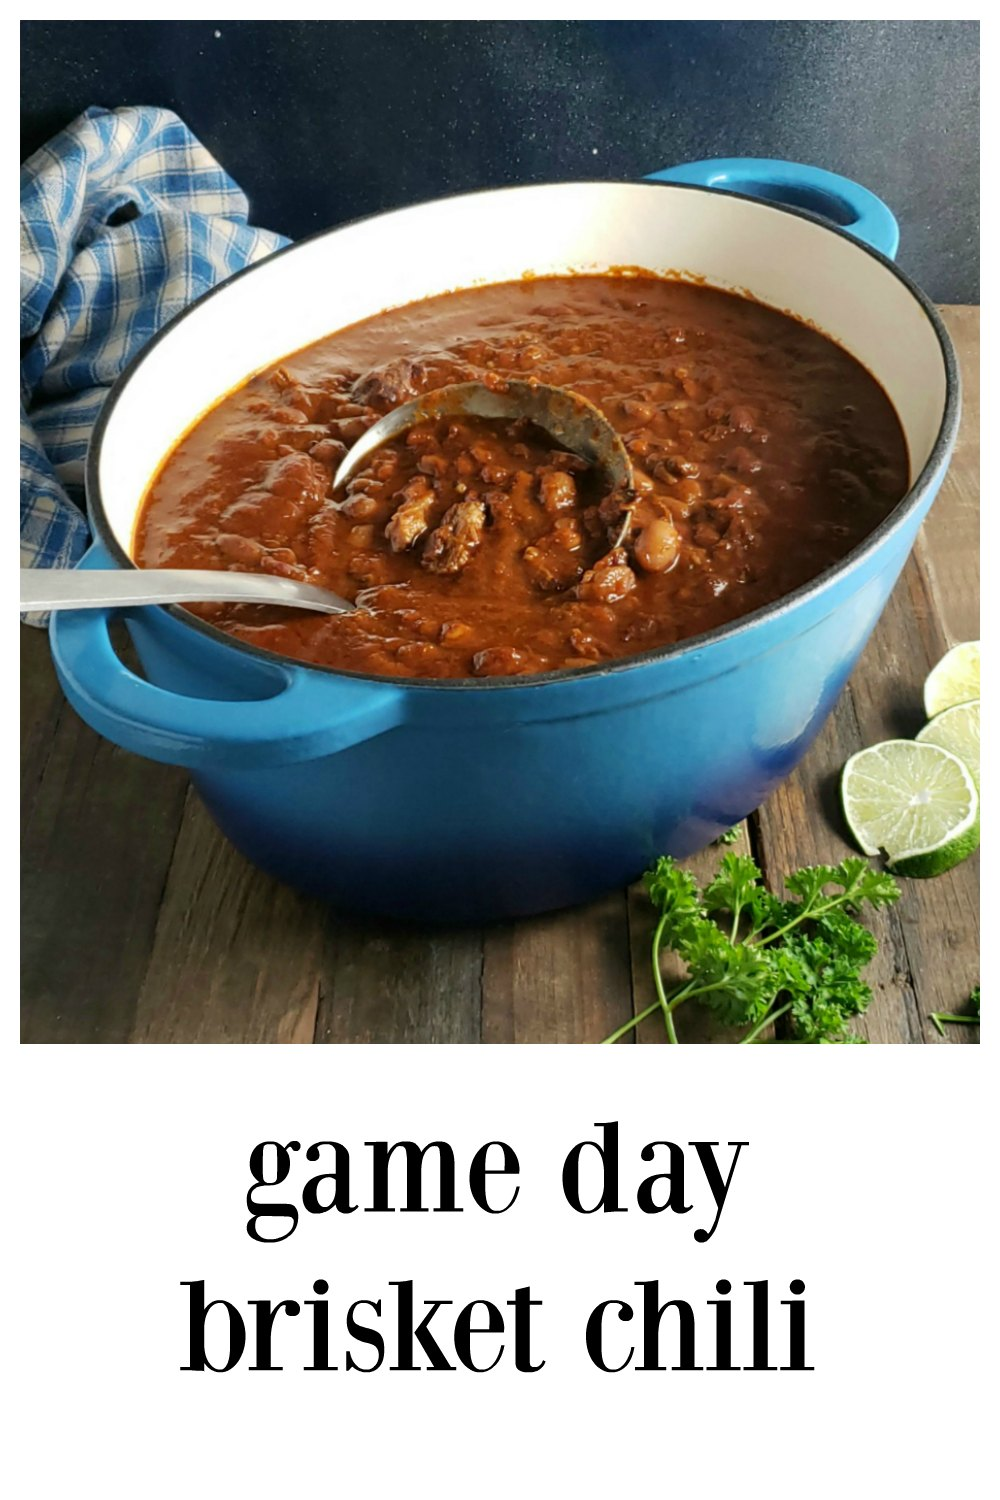 Game Day Brisket Chili is a serious scratch chili chock full of Brisket or other smoked meats that you're gonna want for your Superbowl or Tailgating partly! It's just full of everything good and the beans help keep it in budget! #BrisketChili #SuperbowlFood #GameDayFoods #TailgatingChili #Chili #BarbecueChili #SmokedBrisketChili #BurntEndsChili